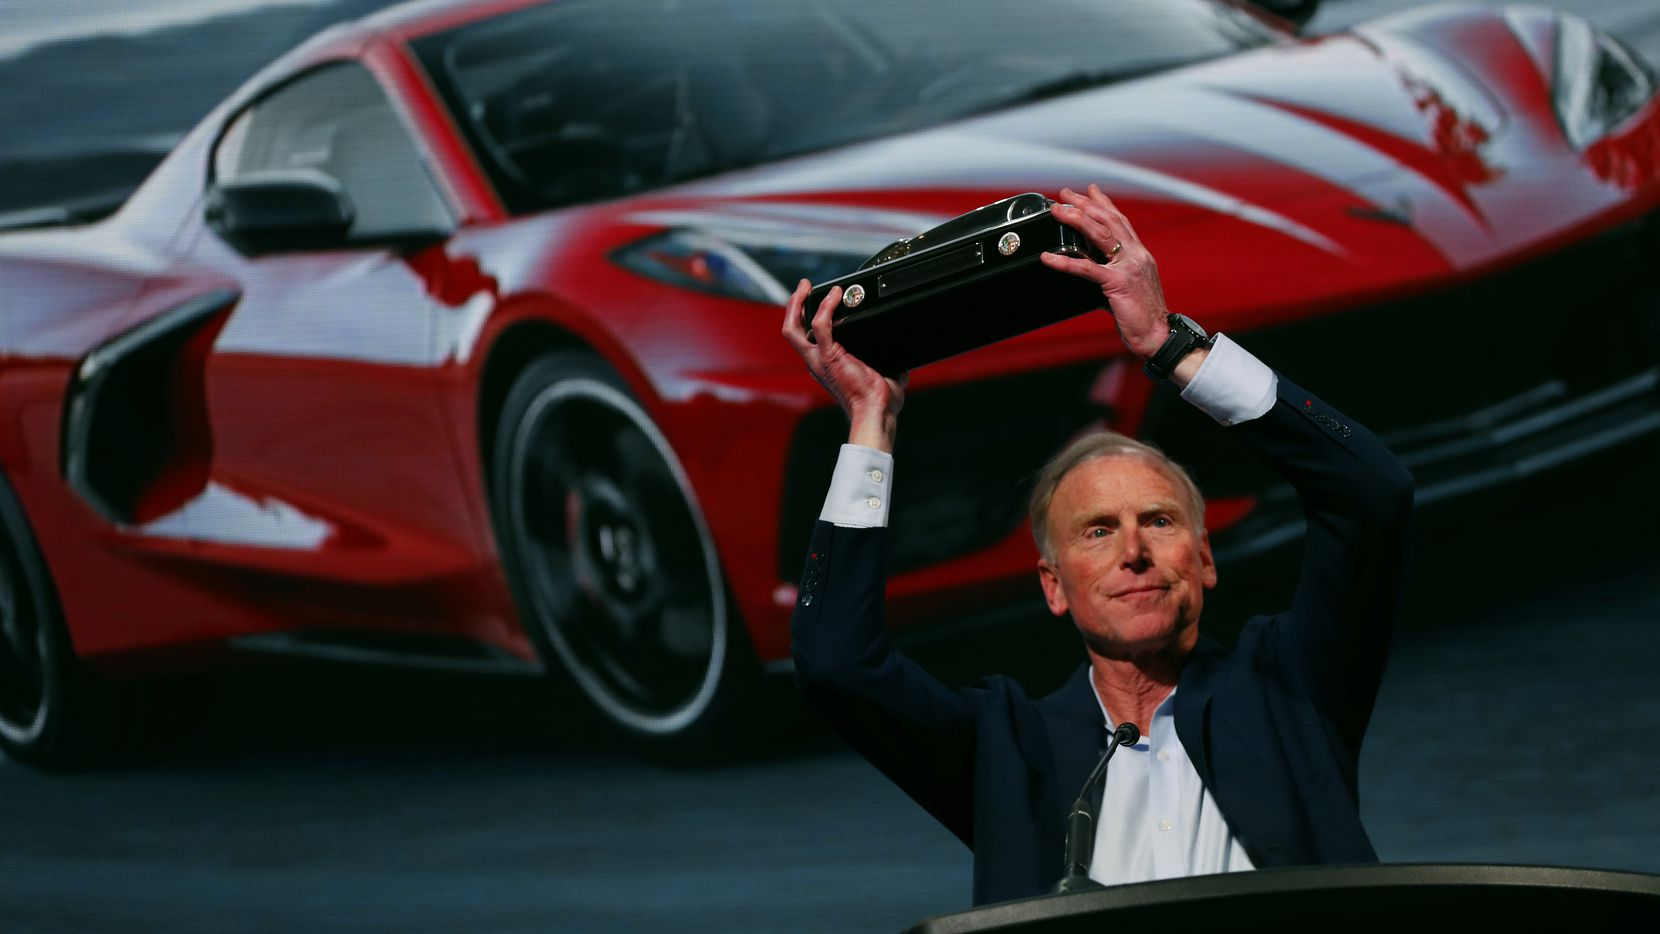 Tadge Juechter, Corvette executive chief engineer, holds up the trophy after the new mid-engine Chevrolet Corvette was named the North American Car of the Year in Detroit on Monday. (AP Photo/Paul Sancya)